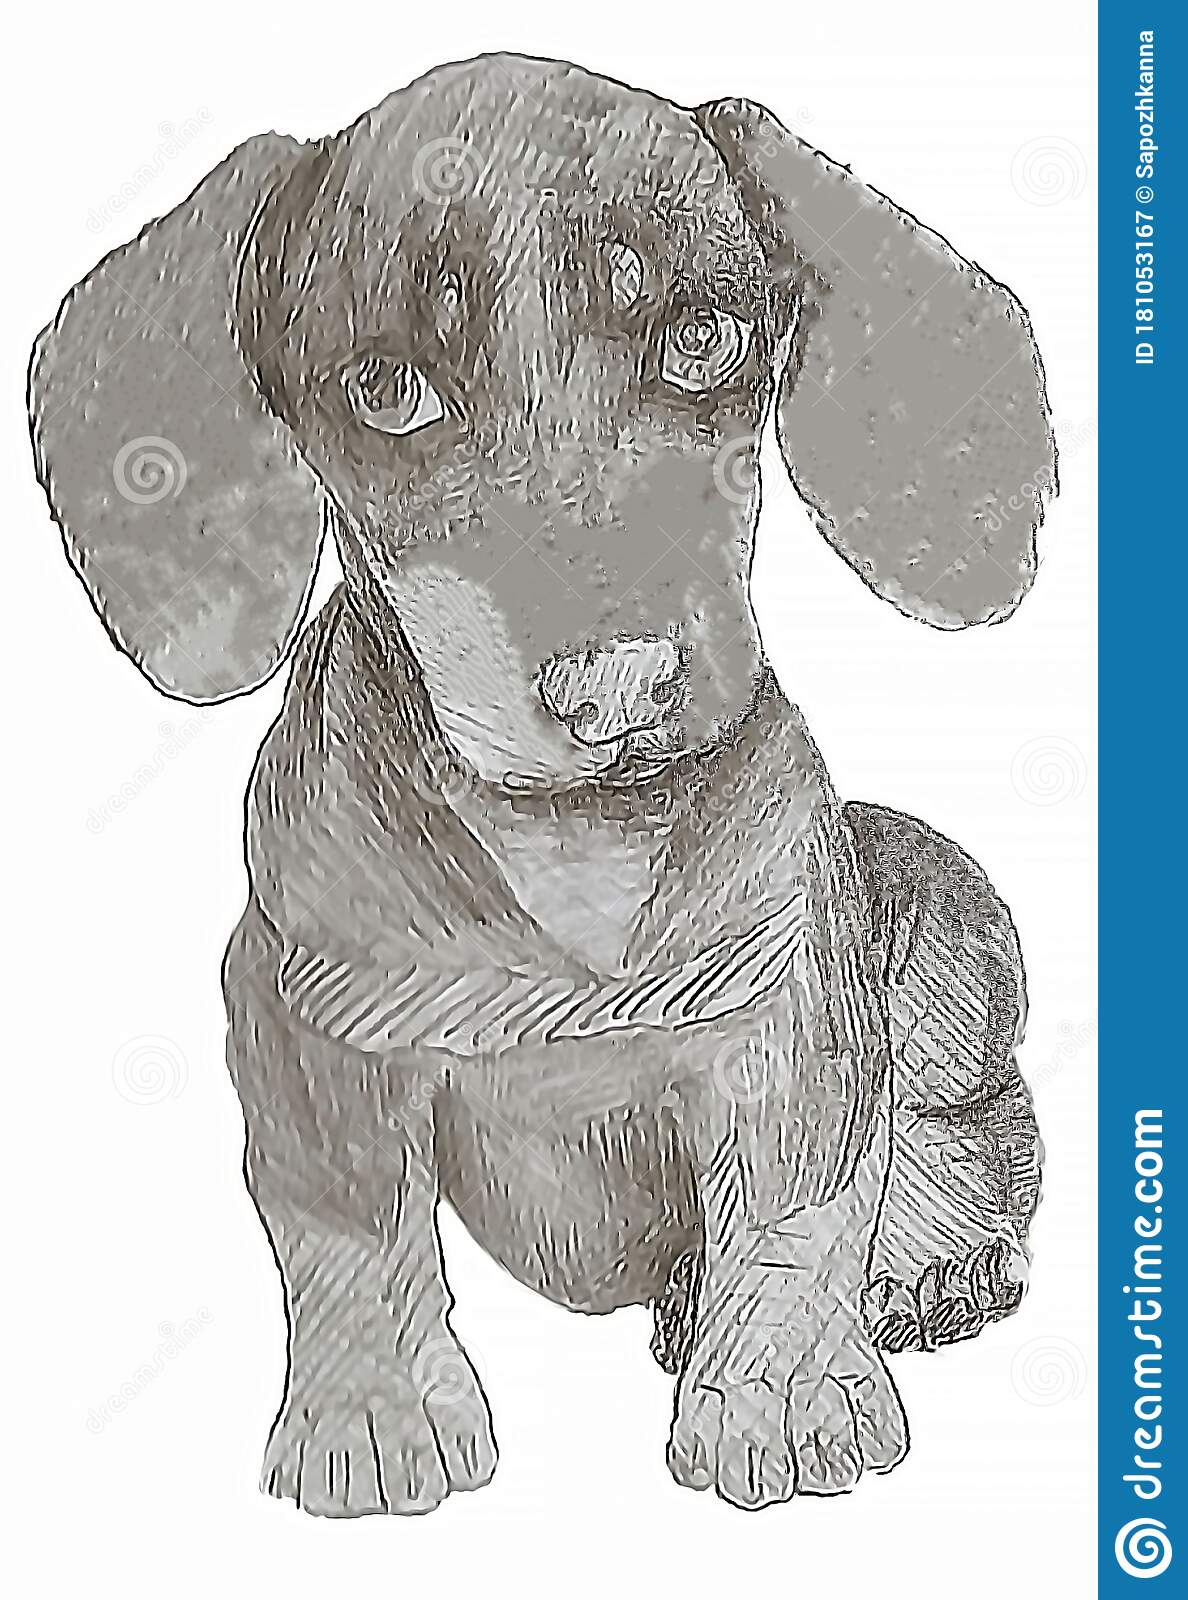 Nice Little Little Dachshund Puppy The Technique Is A Classic Drawing Stock Illustration Illustration Of Mountain Overlay 181053167